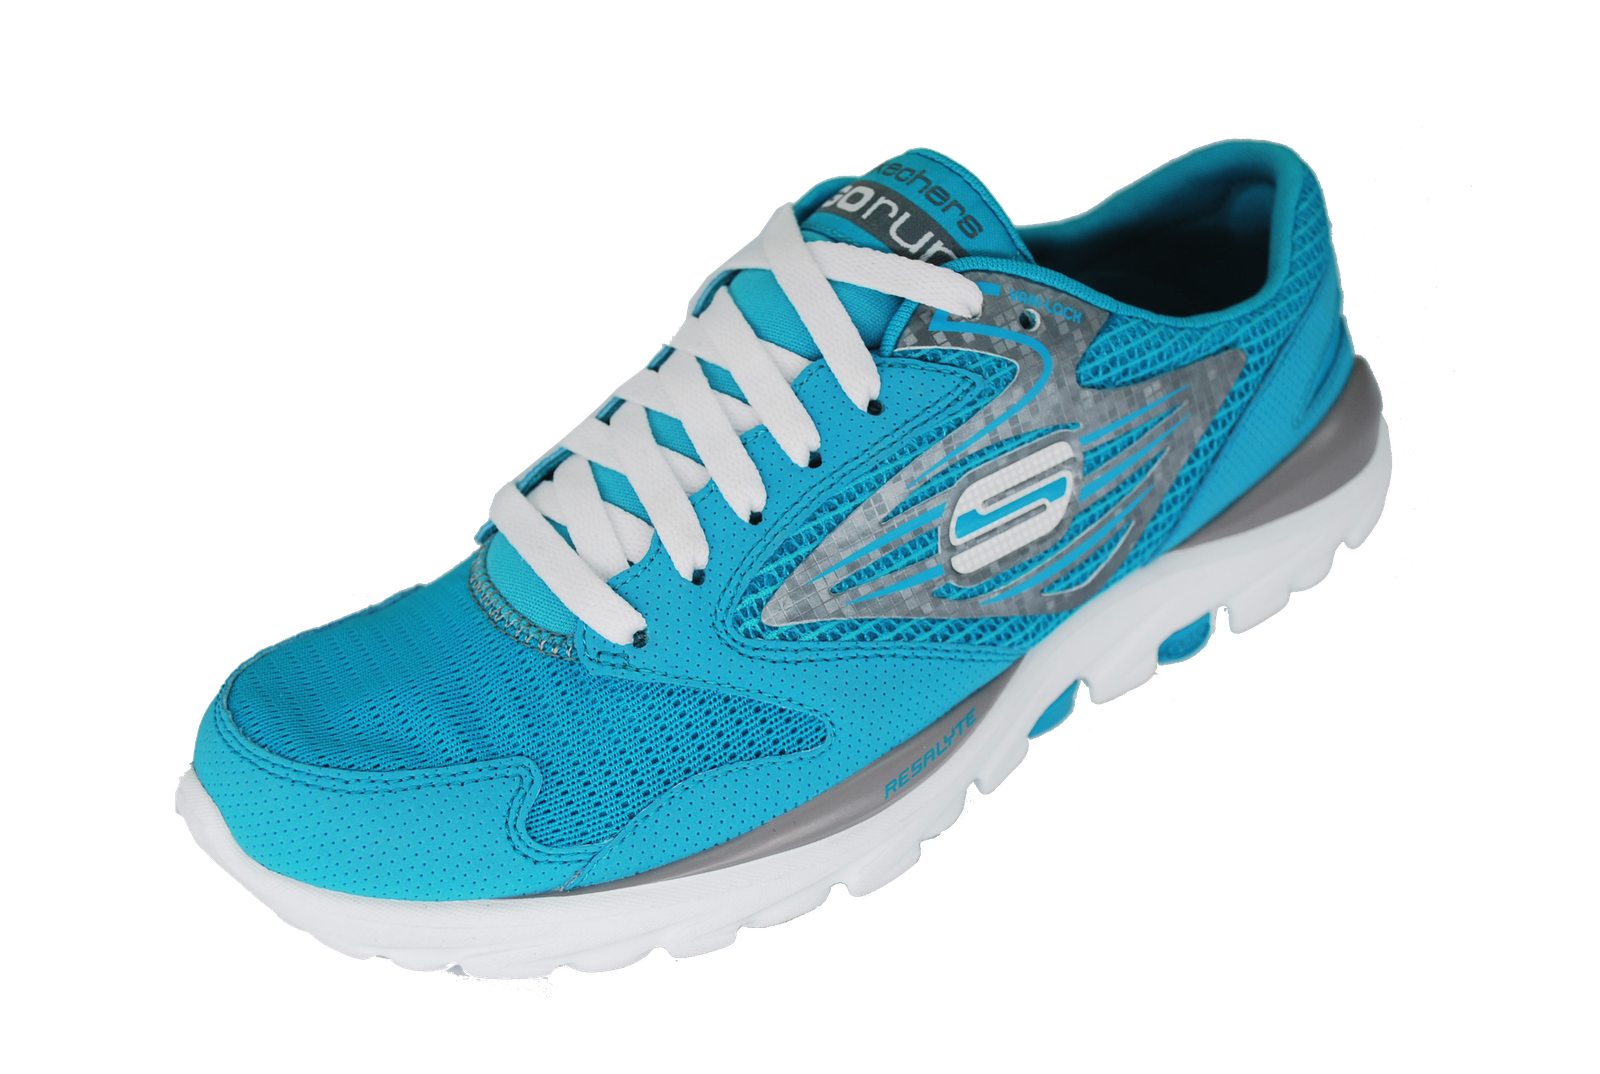 Running Shoes PNG Image - PurePNG | Free transparent CC0 PNG Image ... banner transparent download